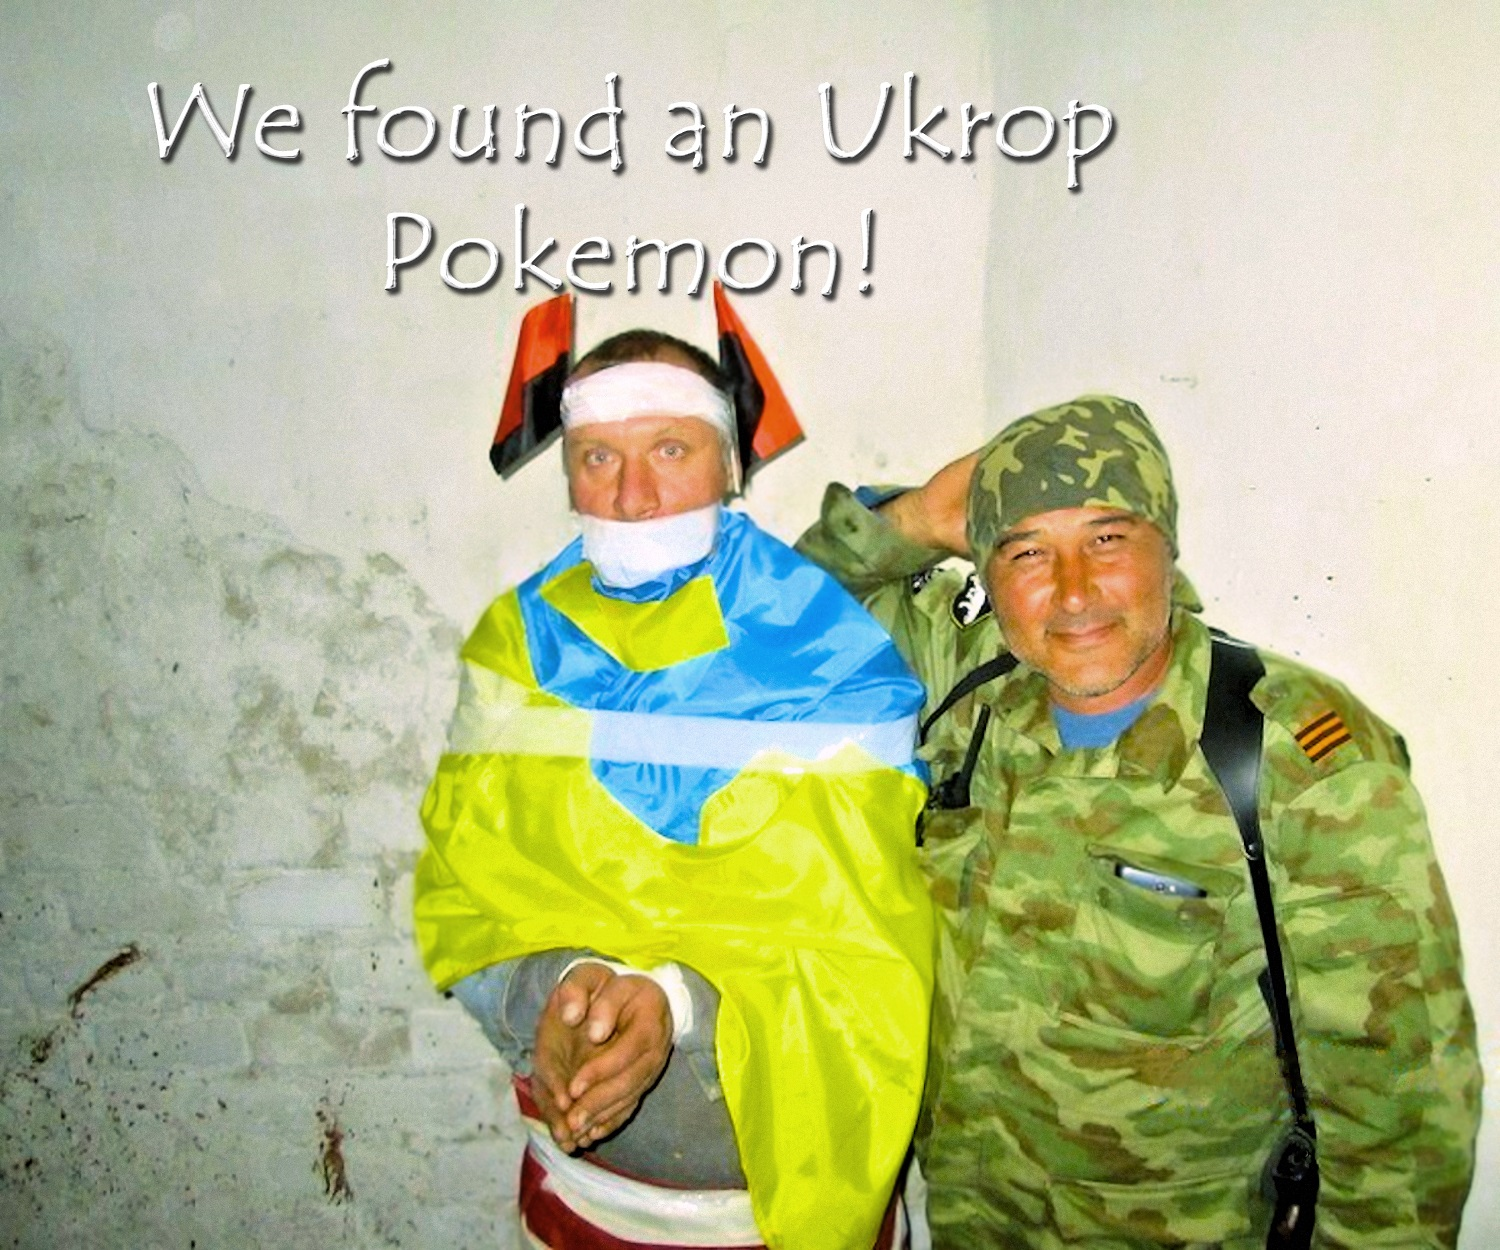 00 dnr ukrop pokemon 210716